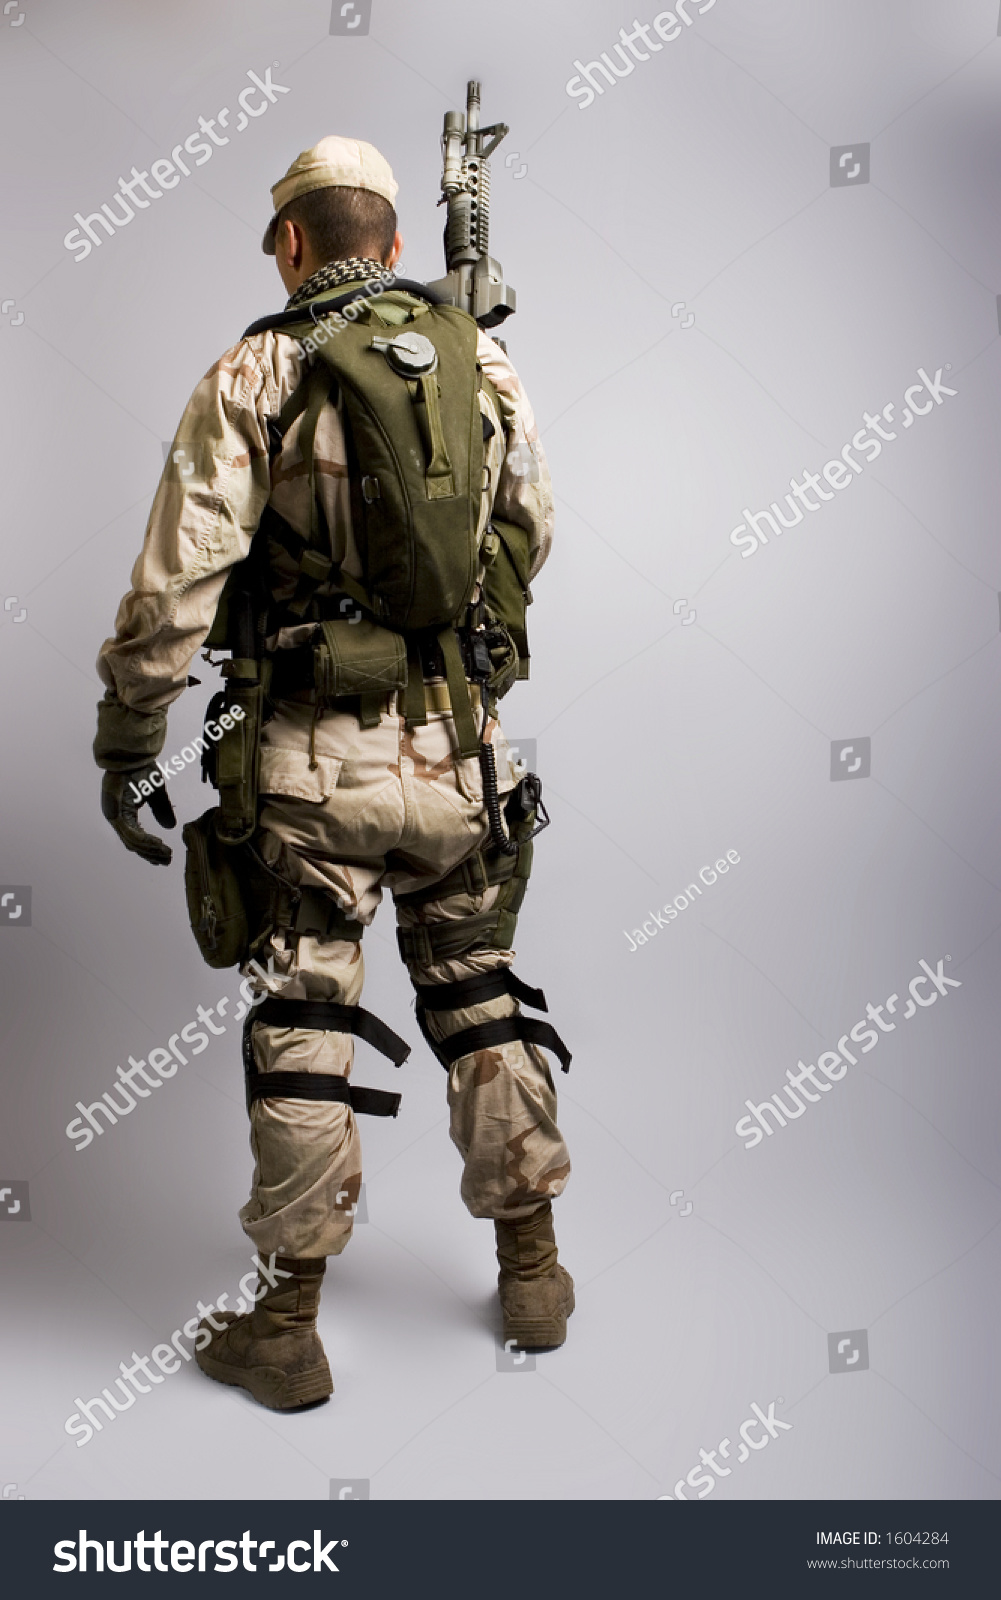 Desert Storm Soldier Army Dressed Camo Stock Photo 1604284